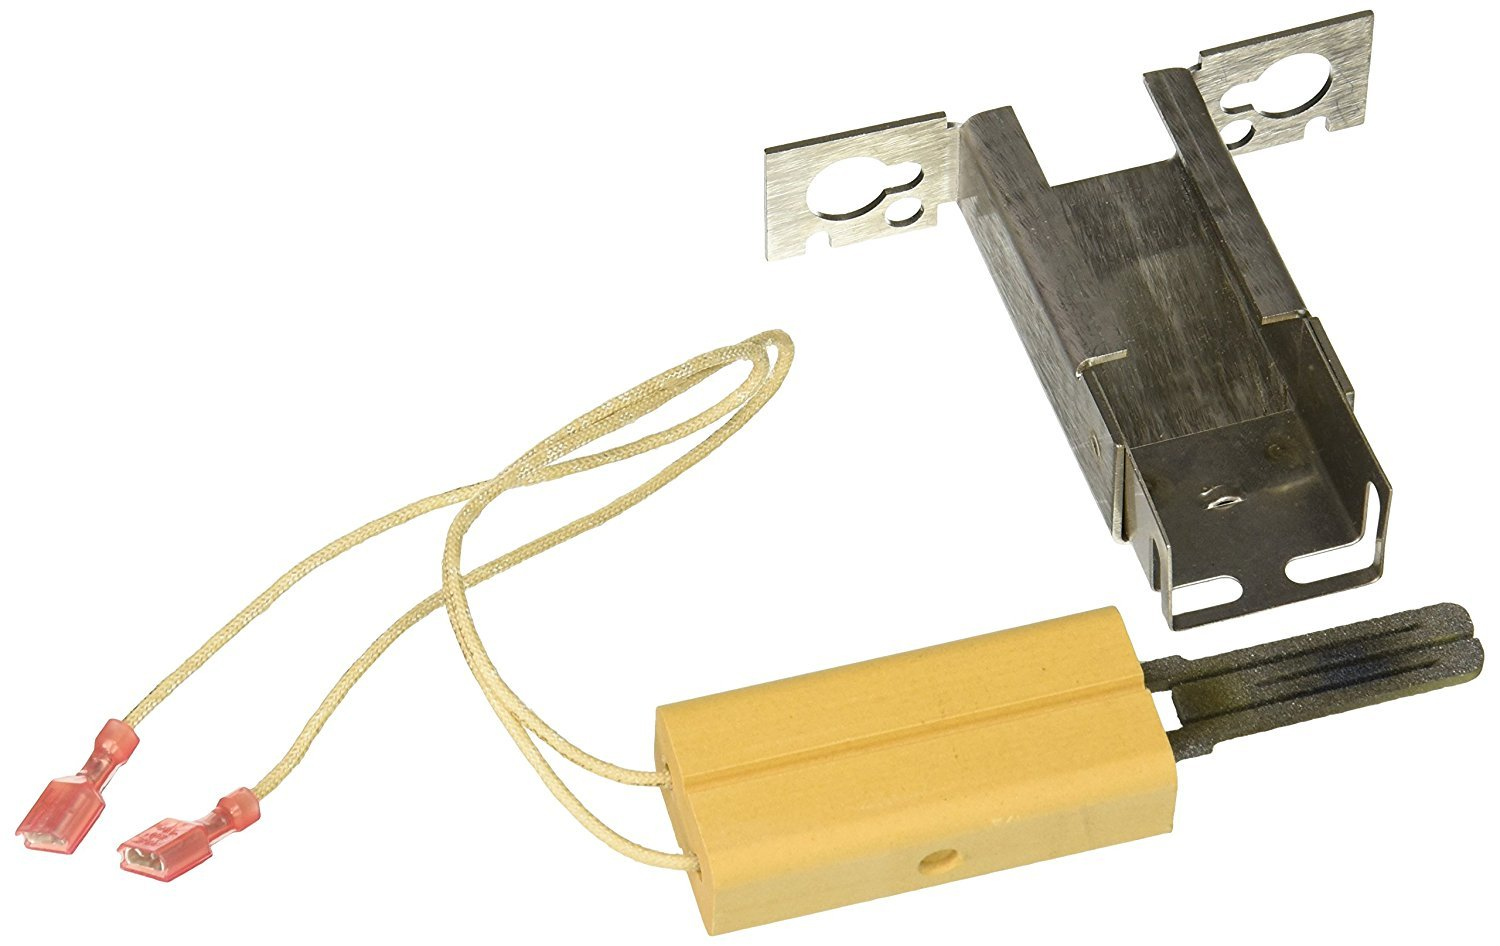 Pentair 471696 Igniter and Bracket Replacement MiniMax NT LN Pool/Spa Heater by Pentair